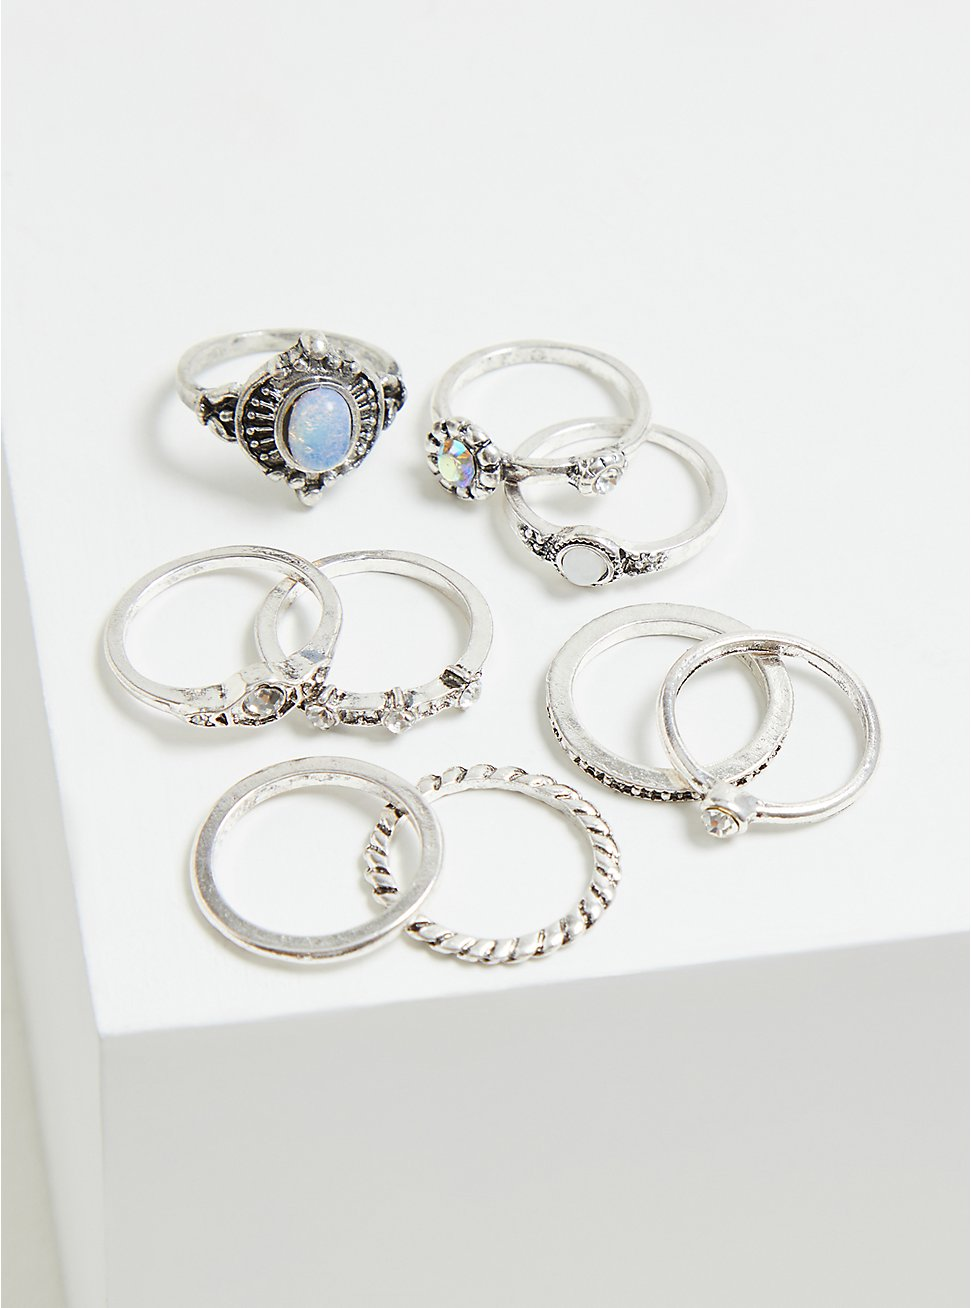 Silver-Tone and Faux Opal Ring Set - Set of 9, SILVER, hi-res